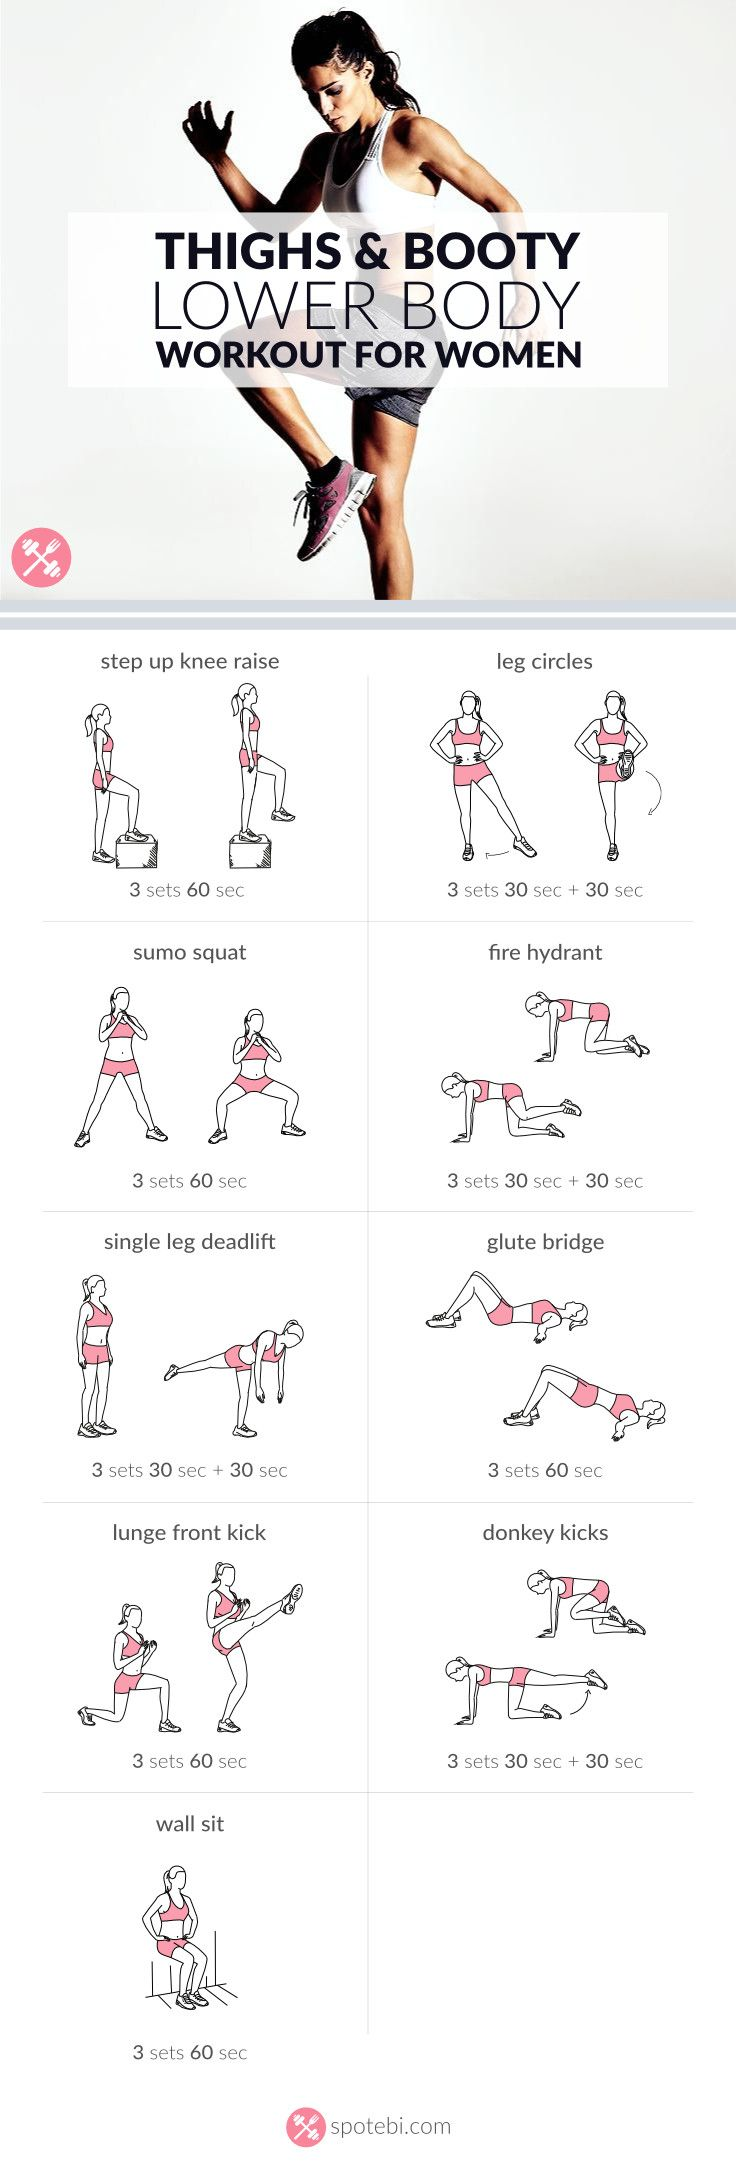 Sculpt your glutes, hips, hamstrings, quads and calves with this lower body workout. A routine designed to give you slim thighs, a